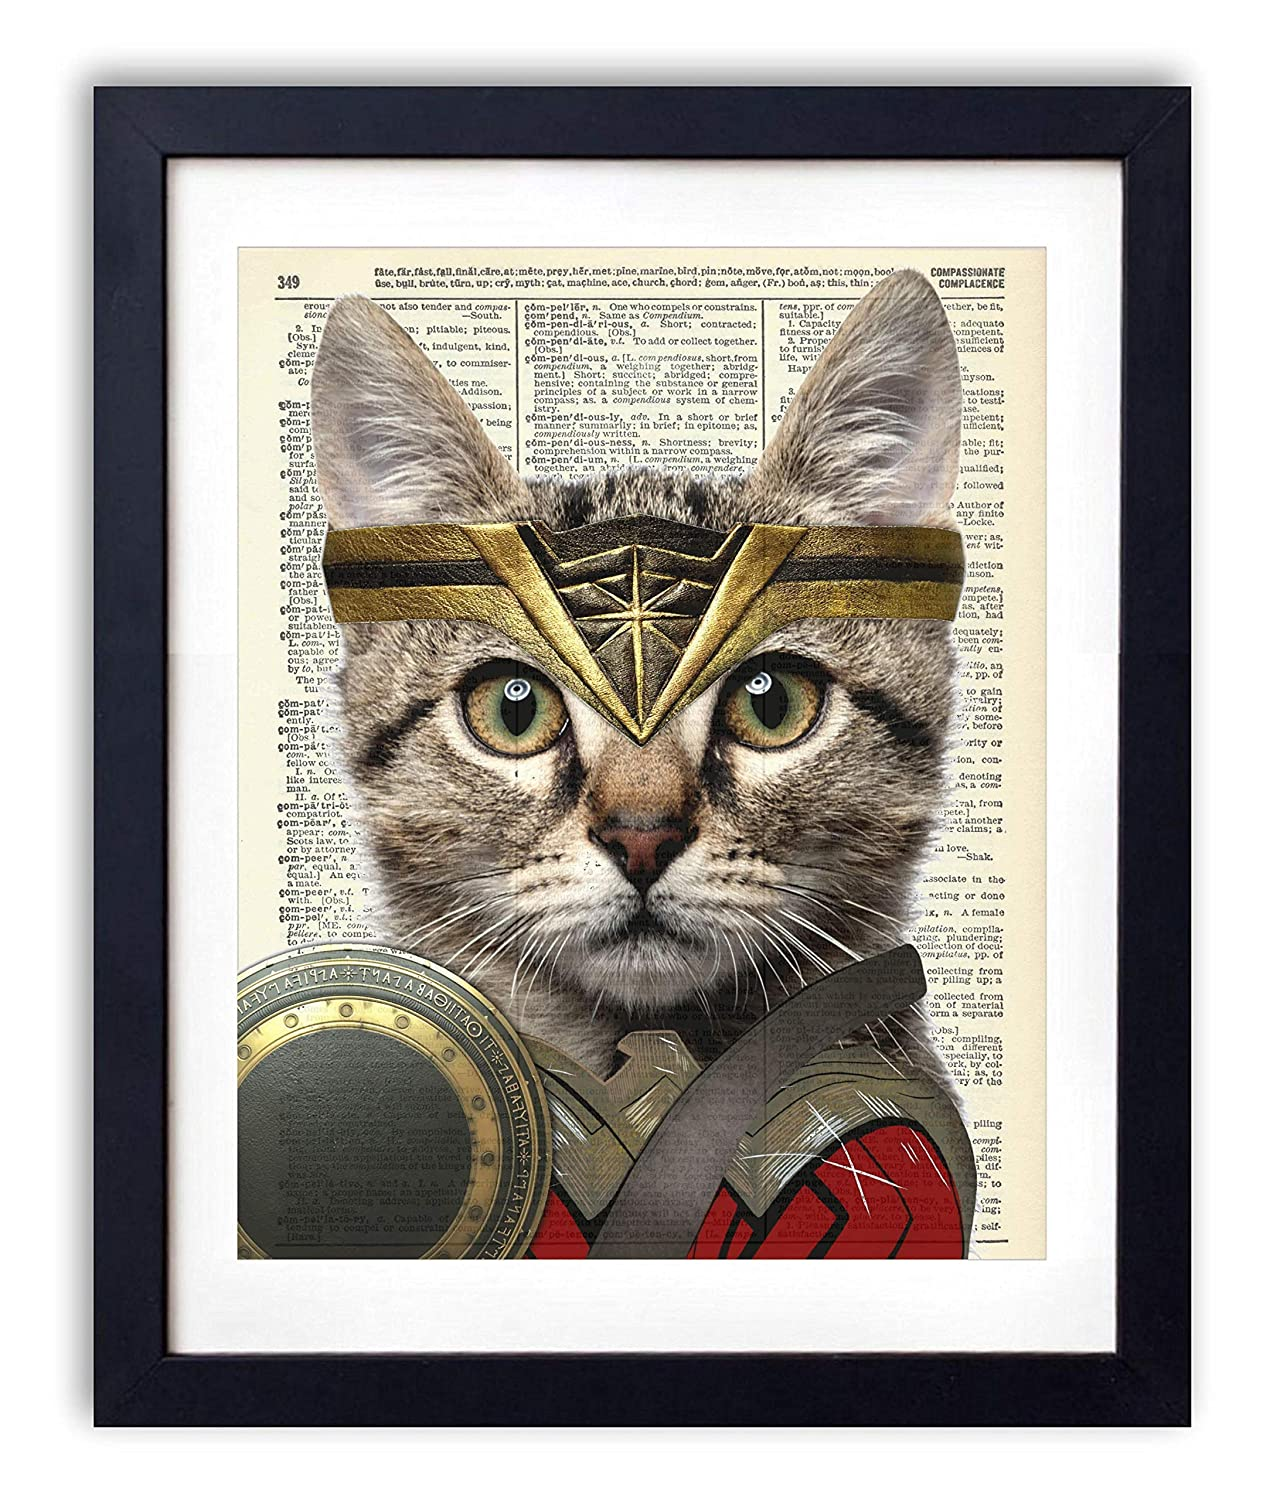 Wonder Cat, Superhero Kids Bedroom Wall Decor, Vintage Wall Art Upcycled Dictionary Art Print Poster For Kids Room Decor 8x10 inches, Unframed